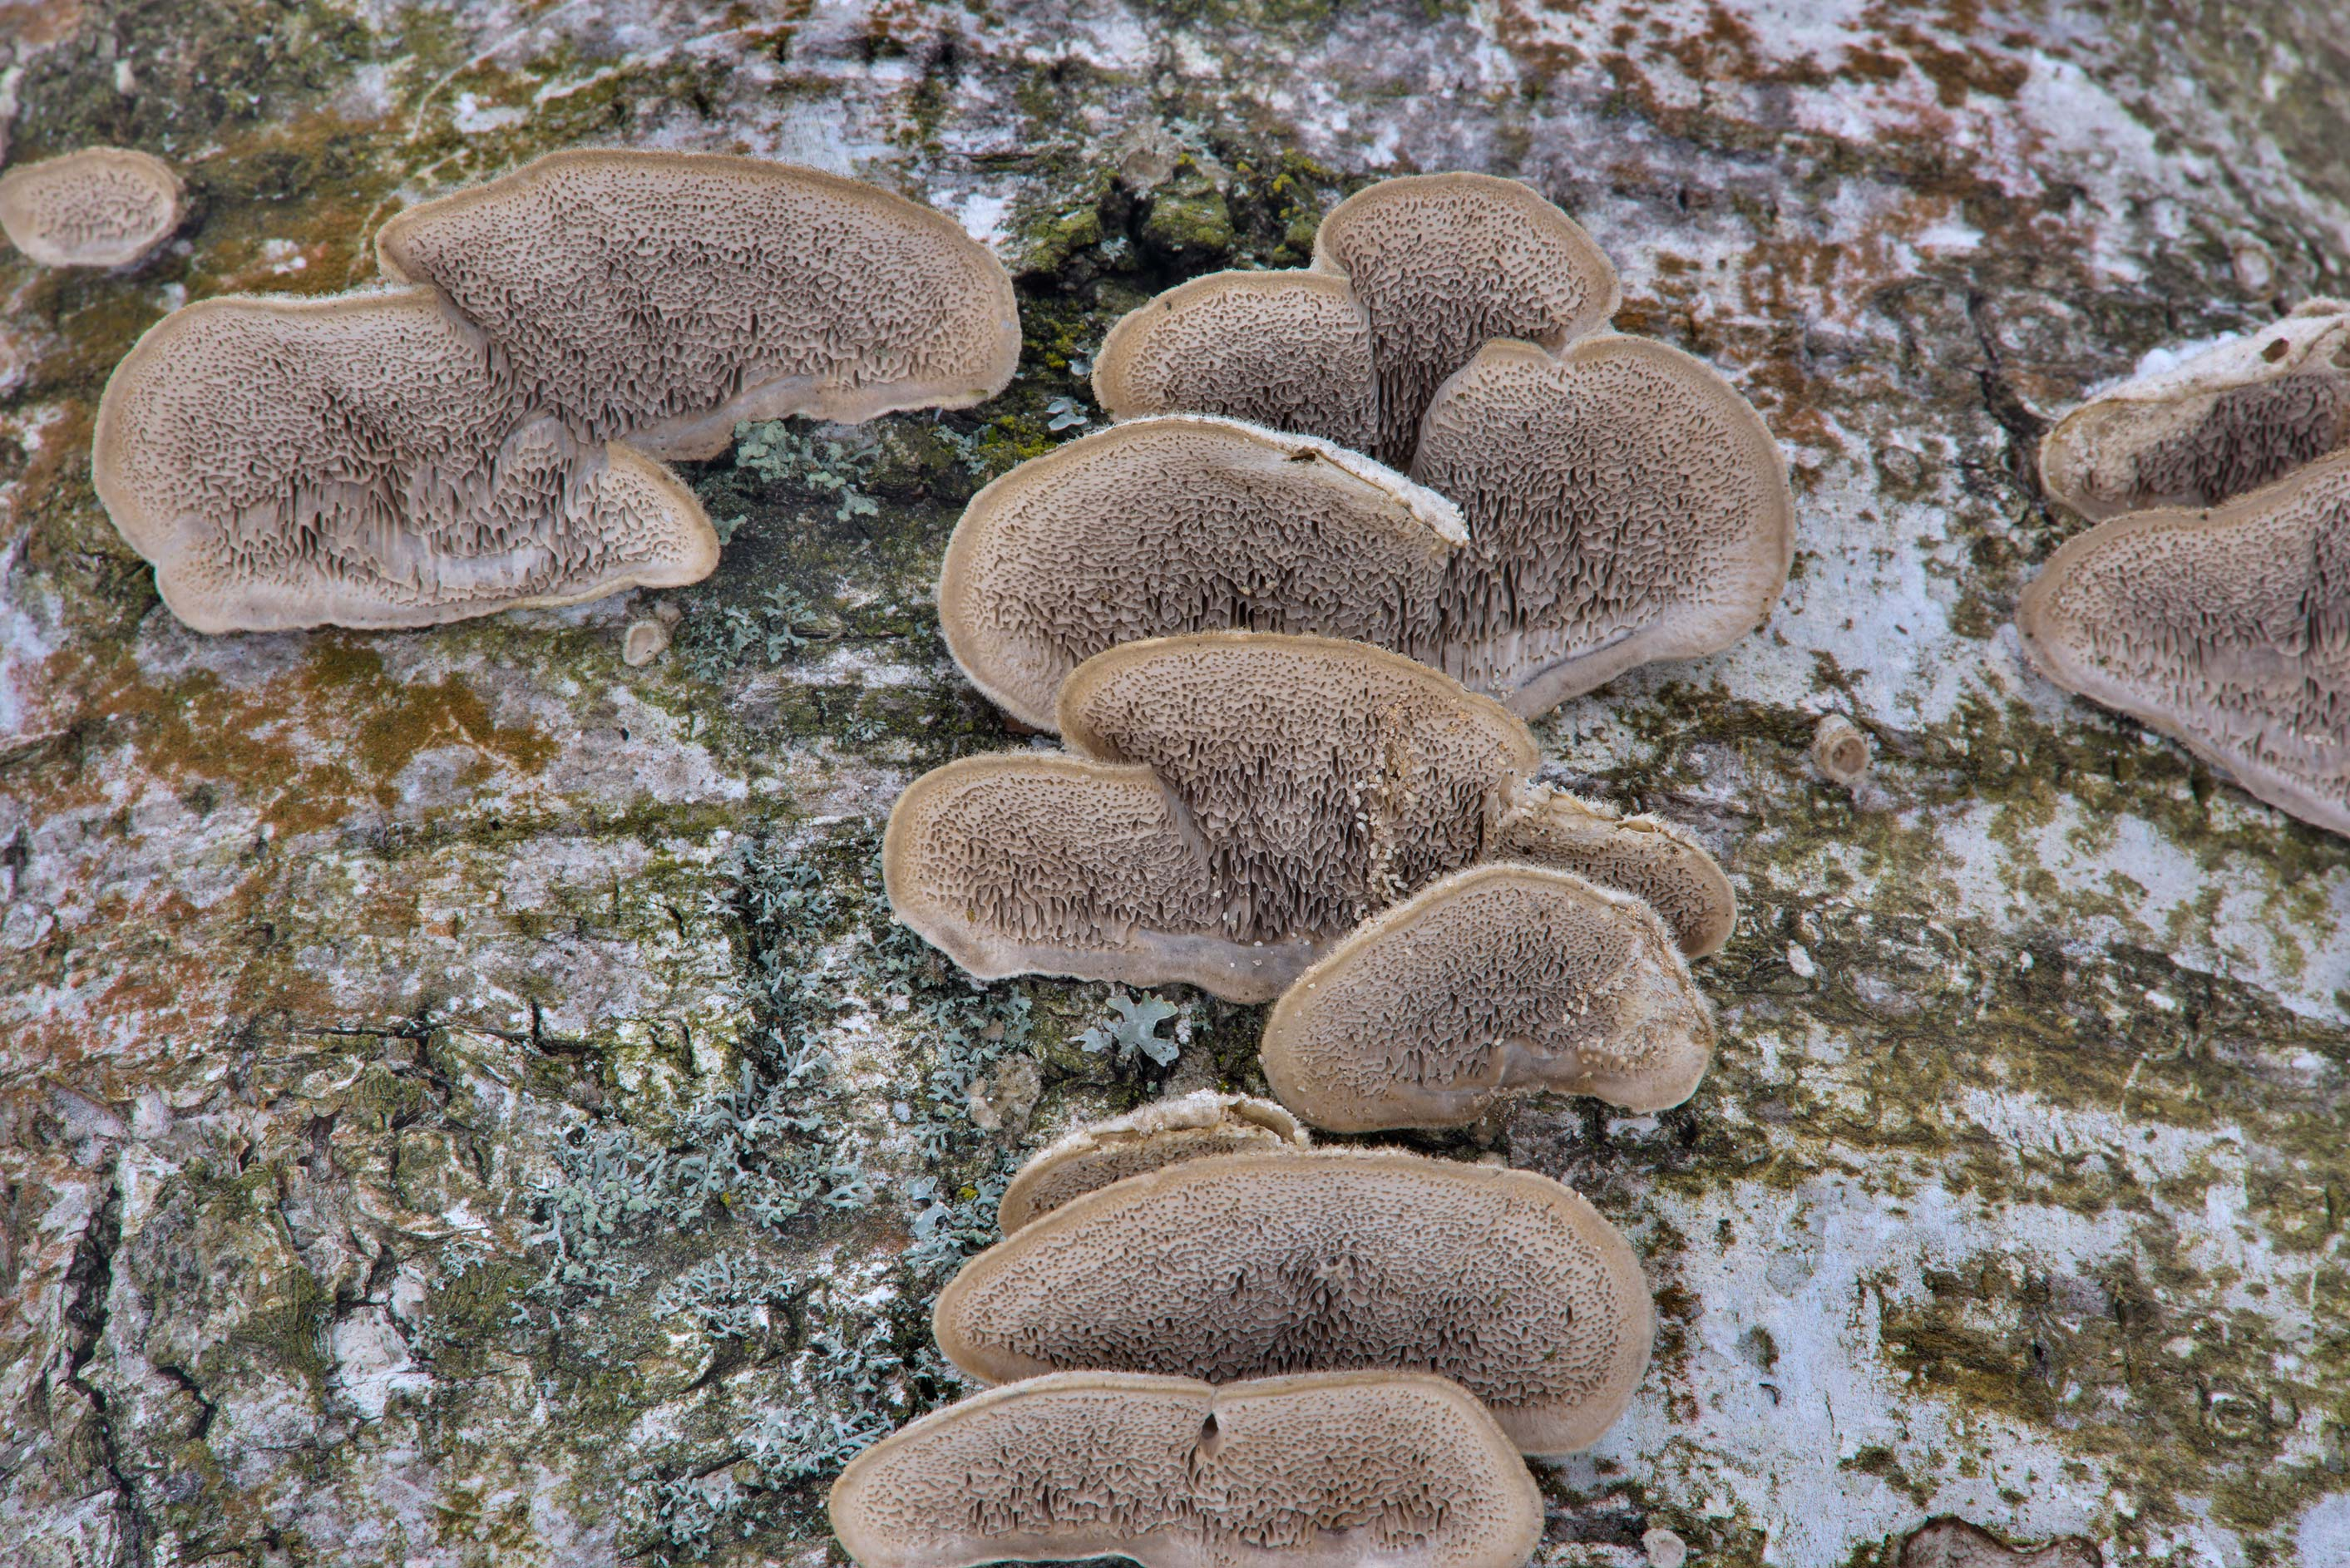 Mossy maze polypore mushrooms (Cerrena unicolor...Park. St.Petersburg, Russia